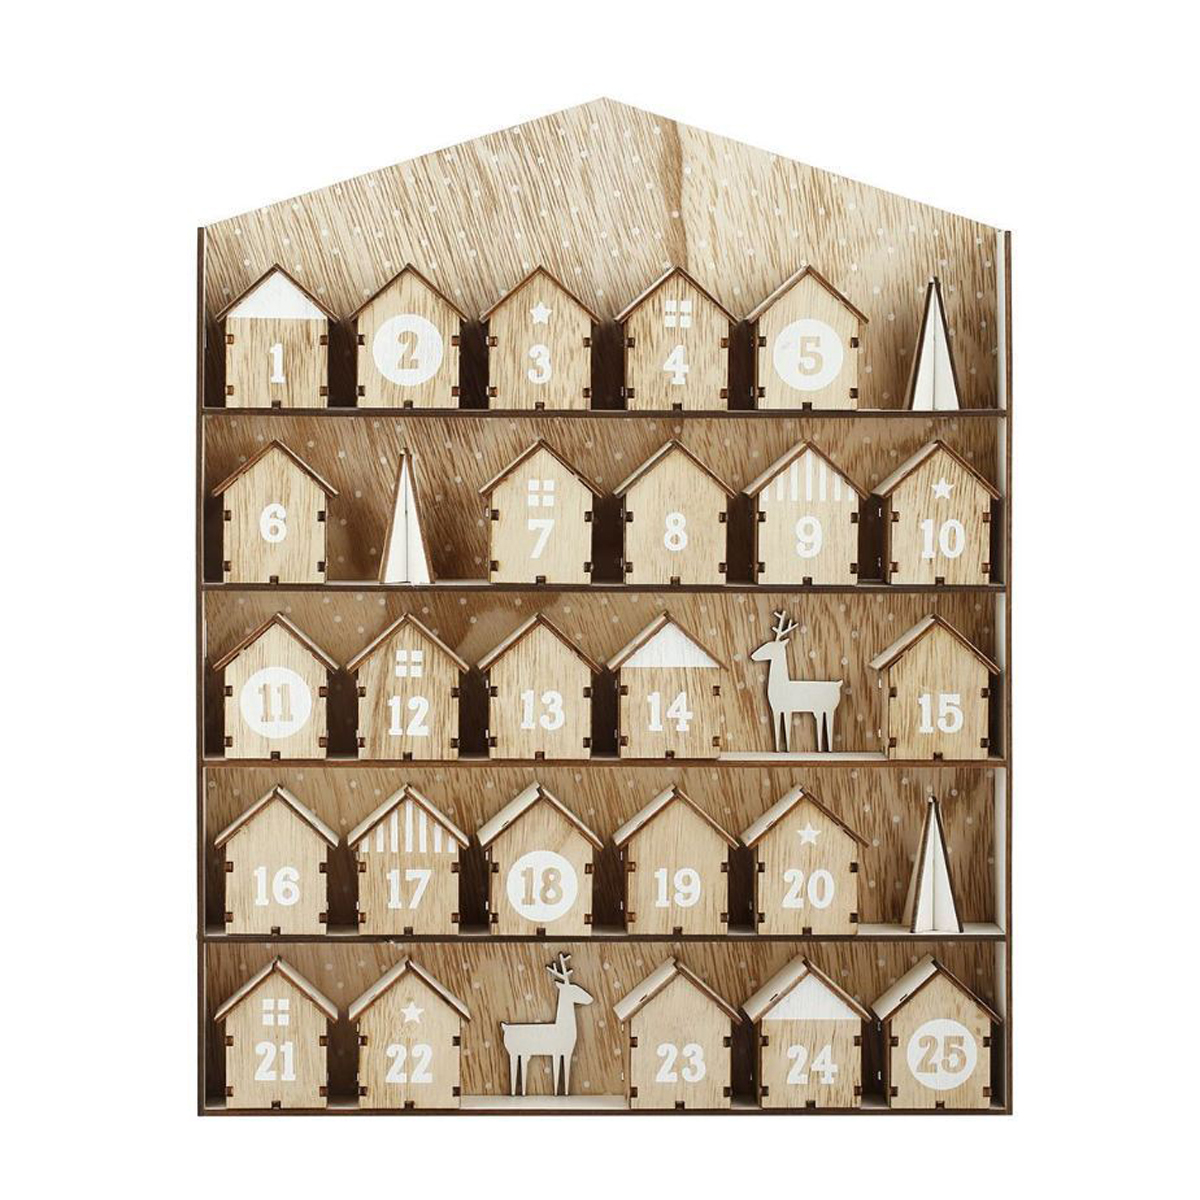 Wooden Hanging Decorations Christmas Advent Calendar Elk House Fit 25 Chocolates Stand Decor Gifts